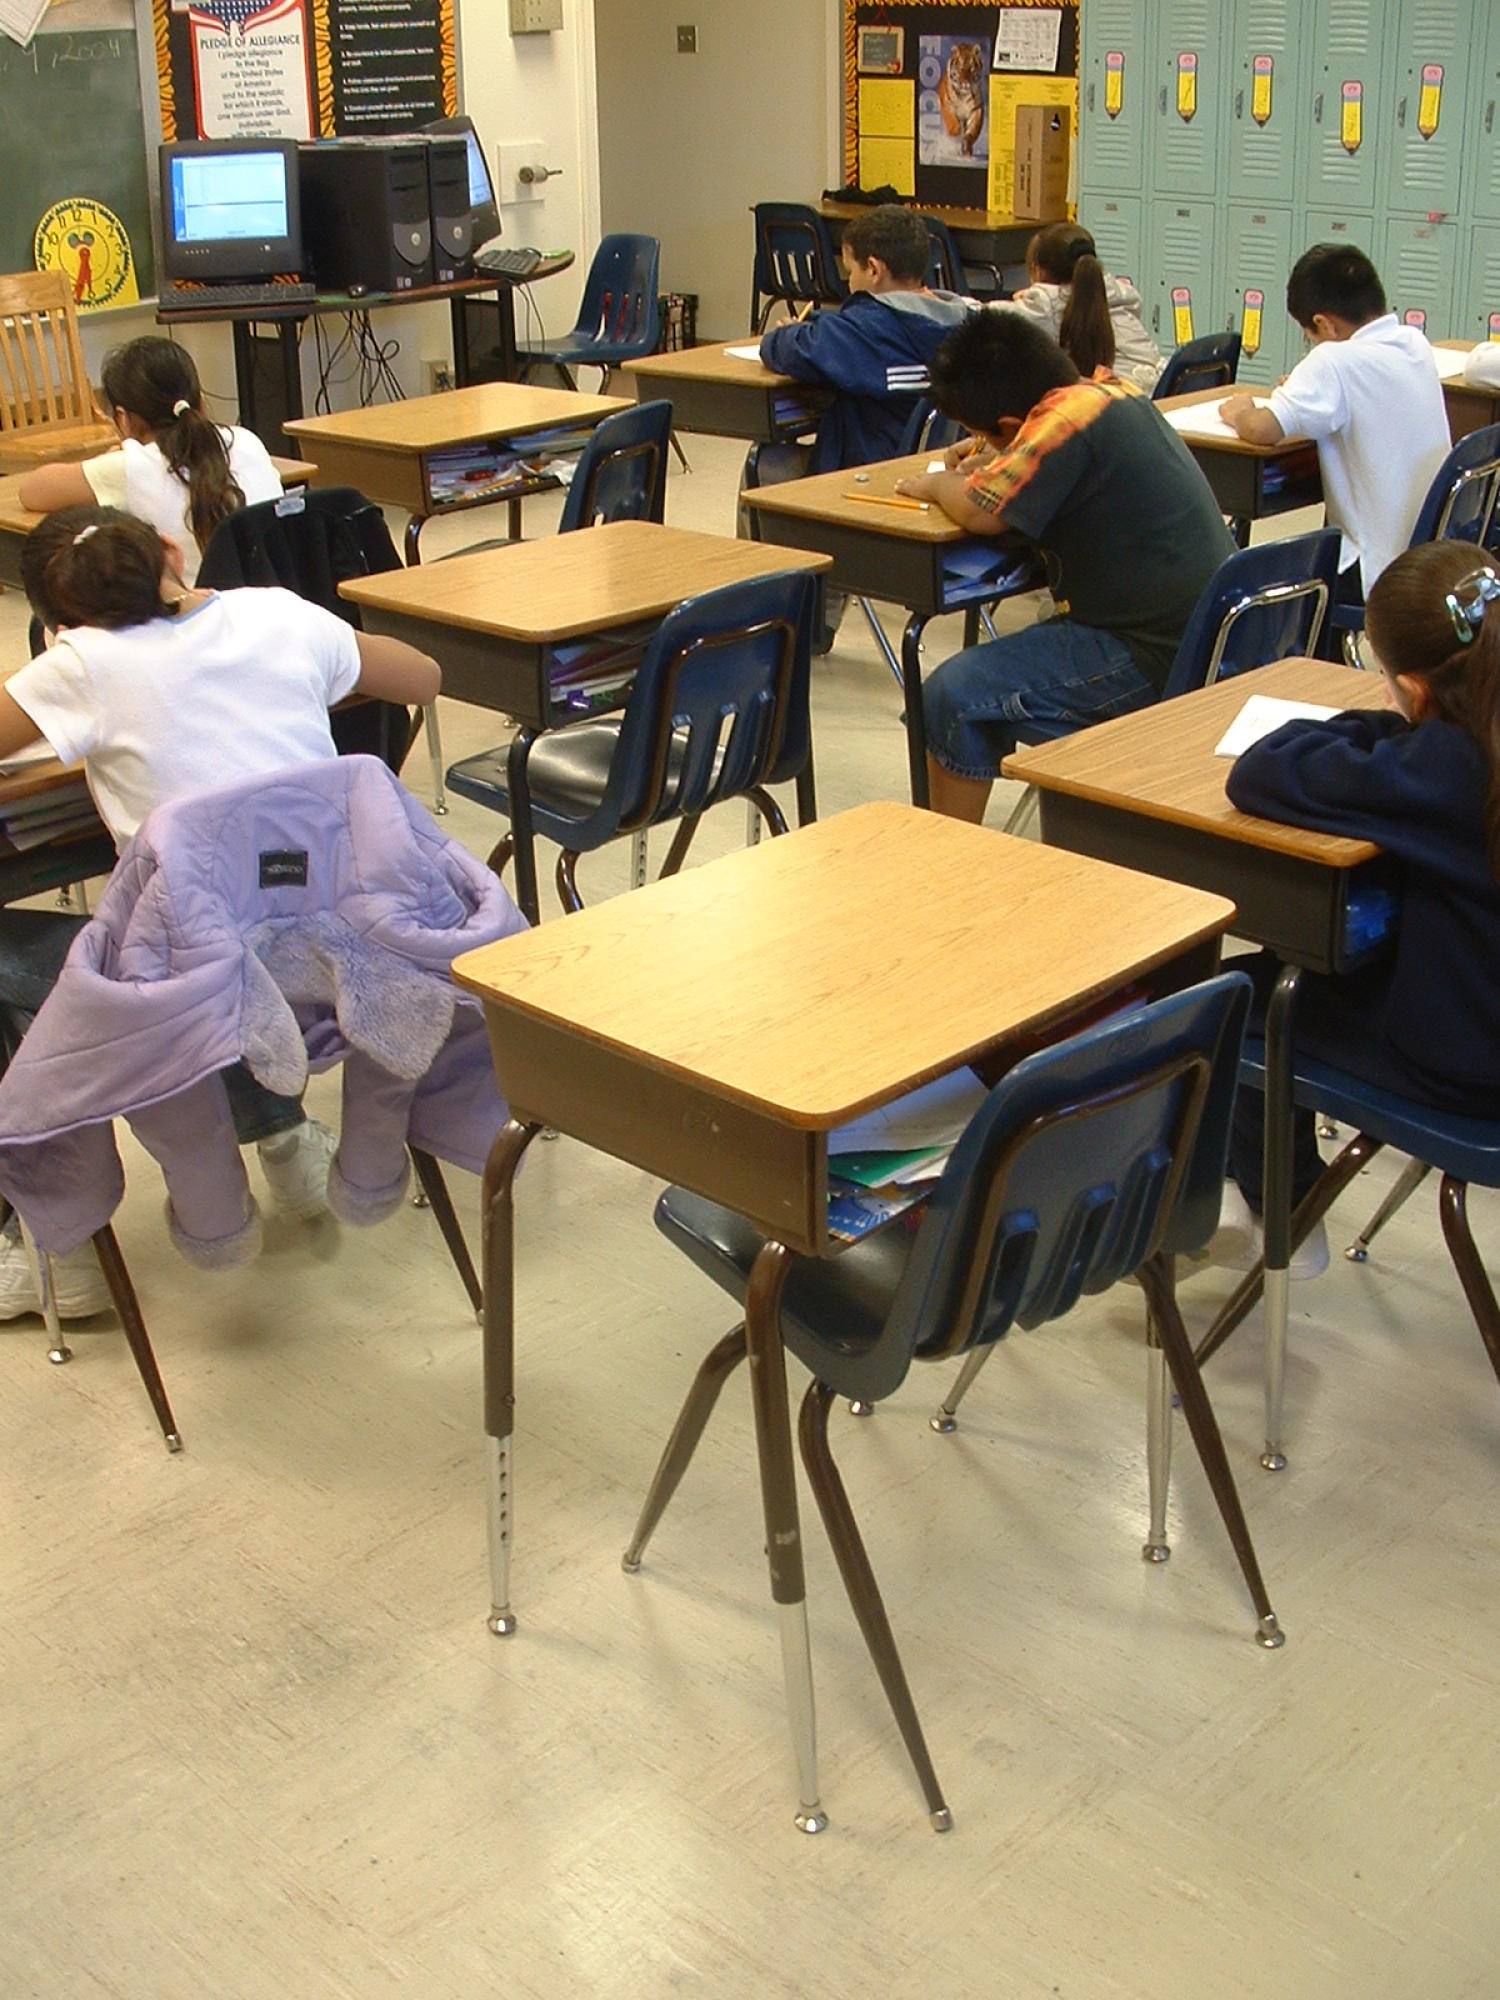 Empty Desks Show The Number Of Absent Students In A